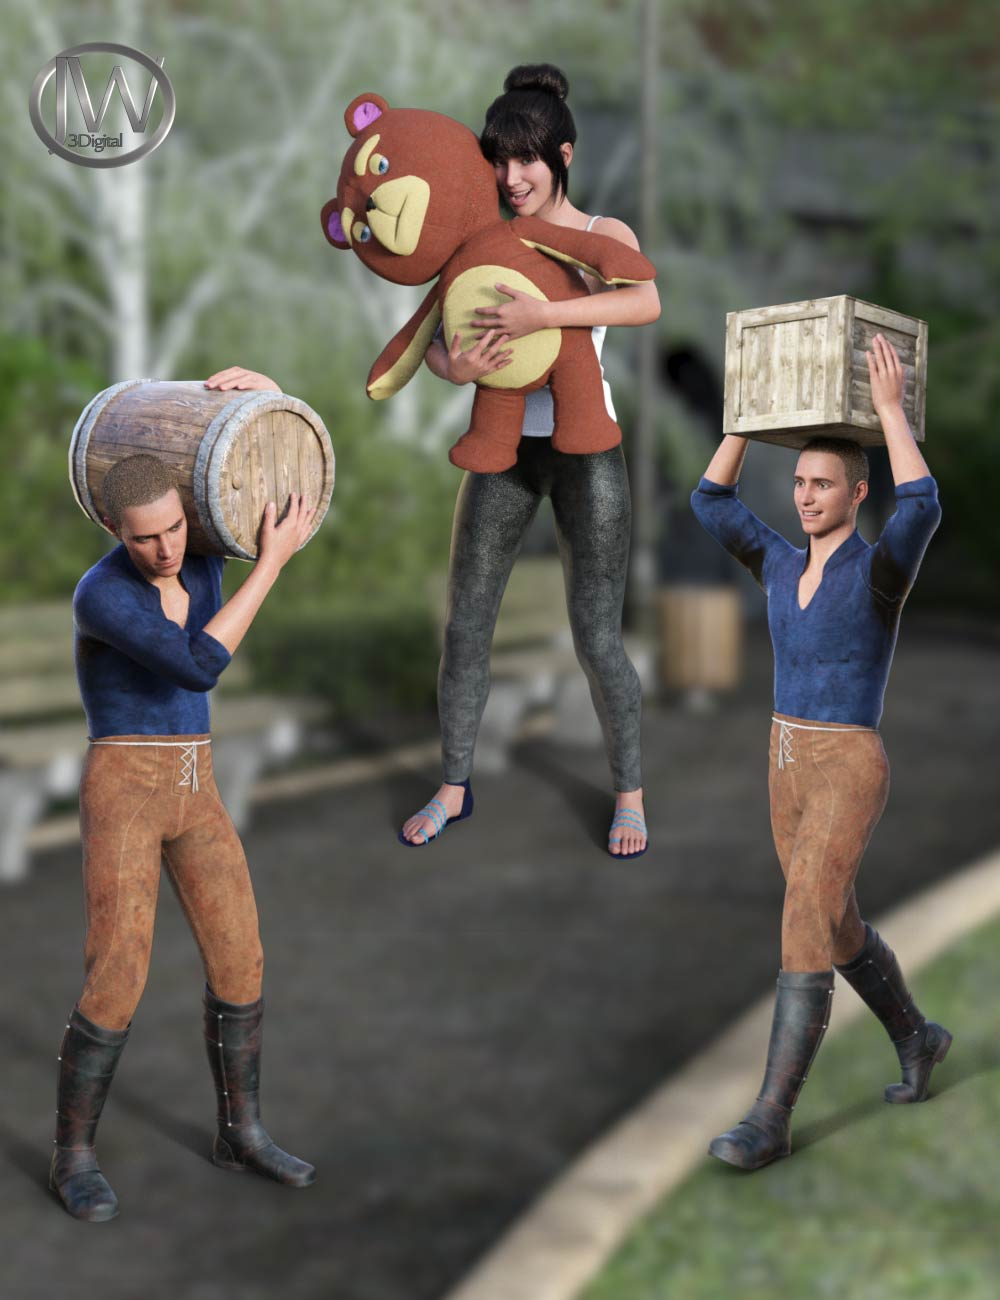 Carry It - Poses for Genesis 8.1 by: JWolf, 3D Models by Daz 3D